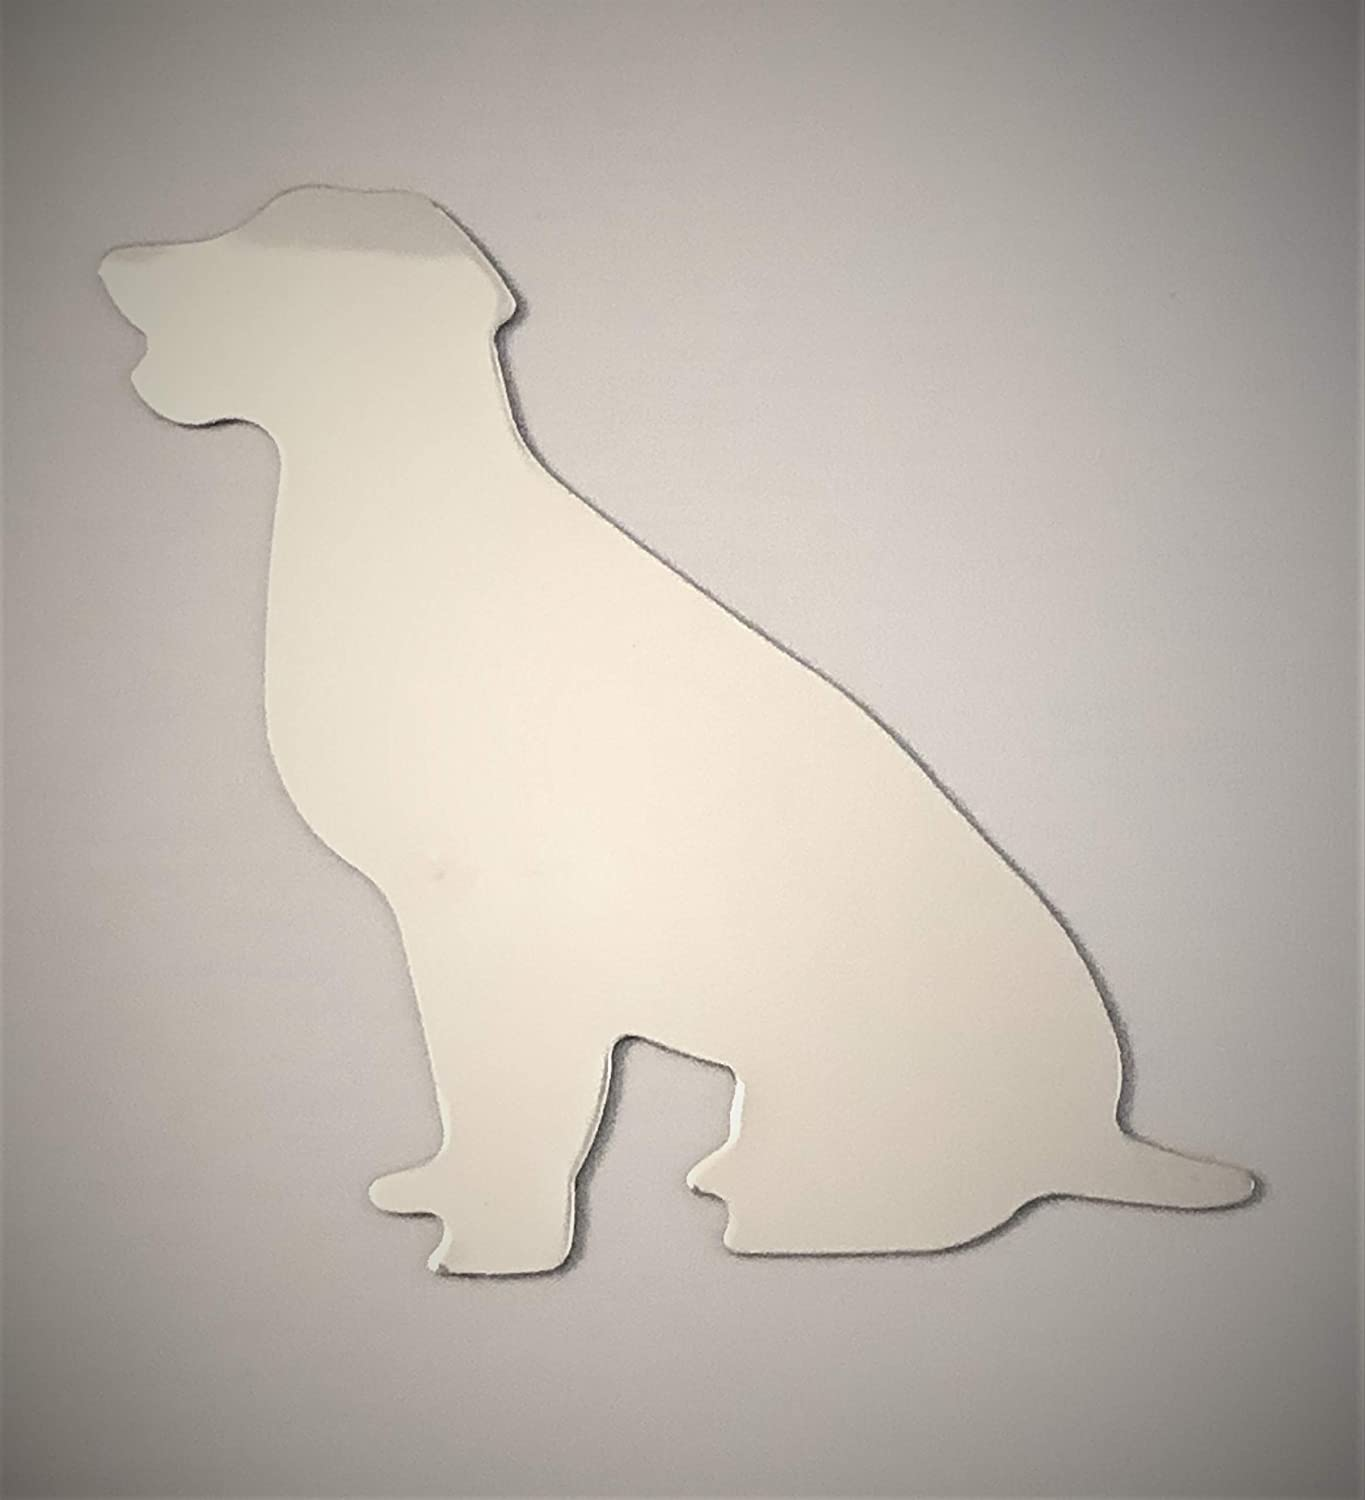 Dog Stylish Stickers for Car or Metal Surface ChromeVillage Magnetic Car Decal Angel Dog Cat Cross Chrome Reflective Magnetic Car Decals